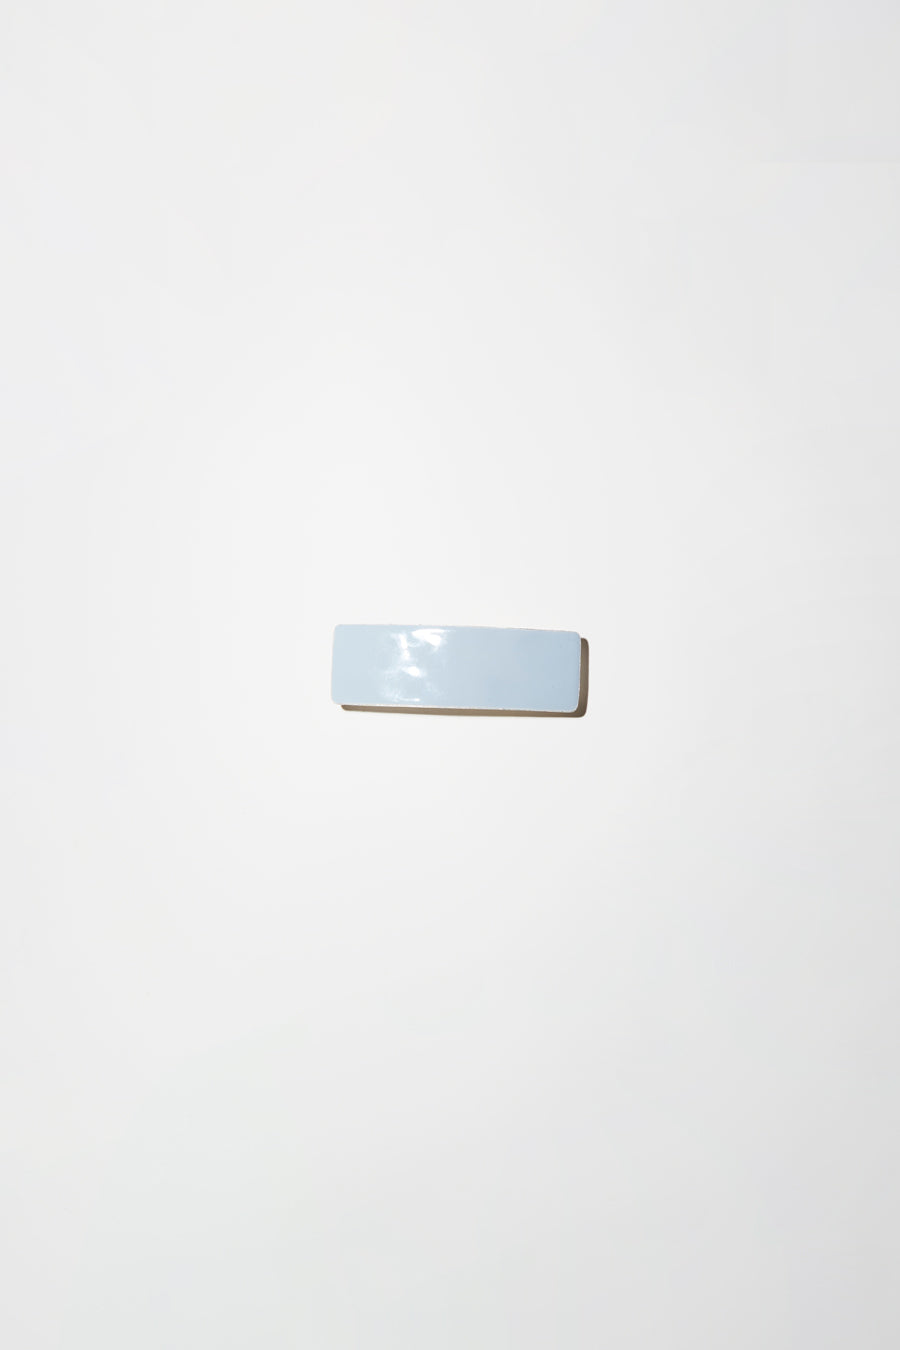 Little Woman Paris Rectangle Barrette in Fumee